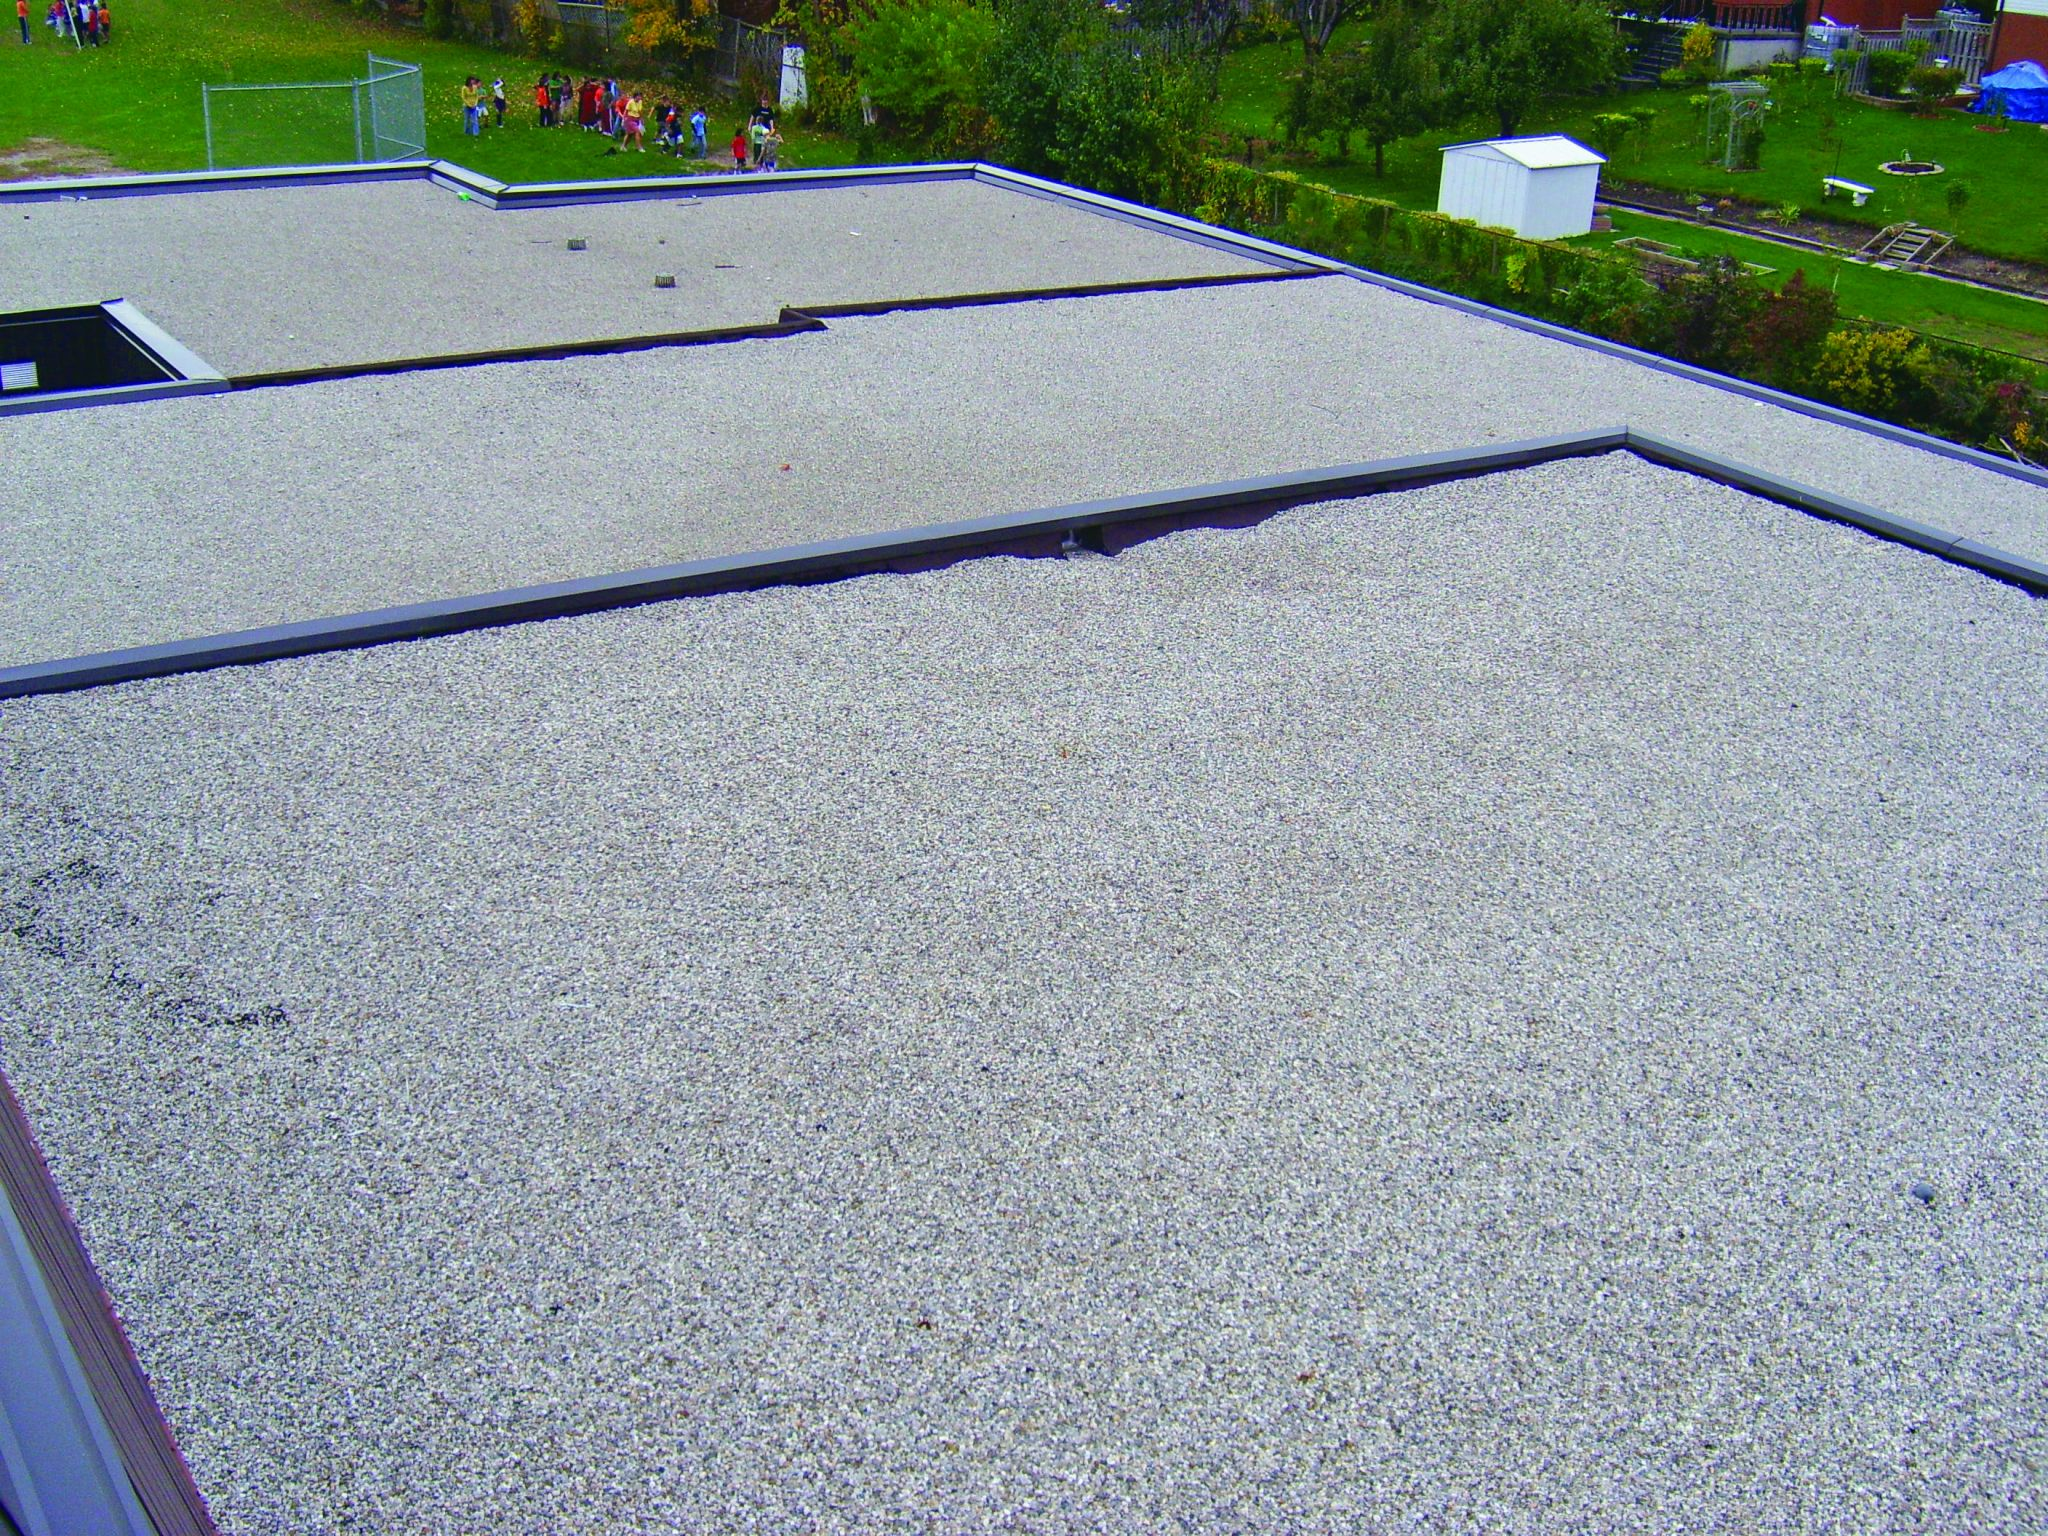 Along with being esthetically pleasing, a pea-gravelled built-up roof (BUR) system provides a highly flame resistant and tough surface.